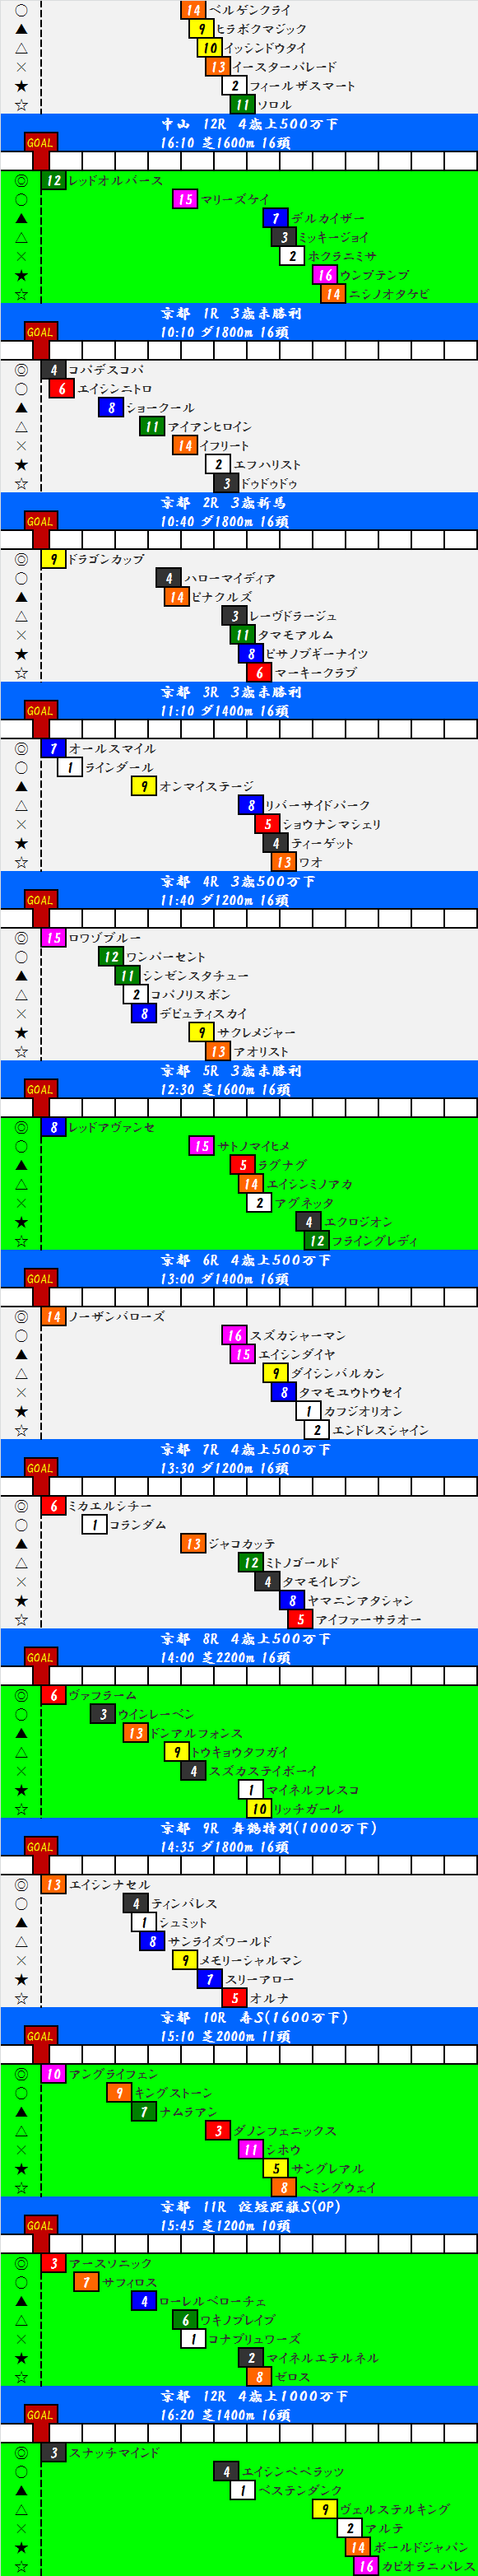 2016010902.png